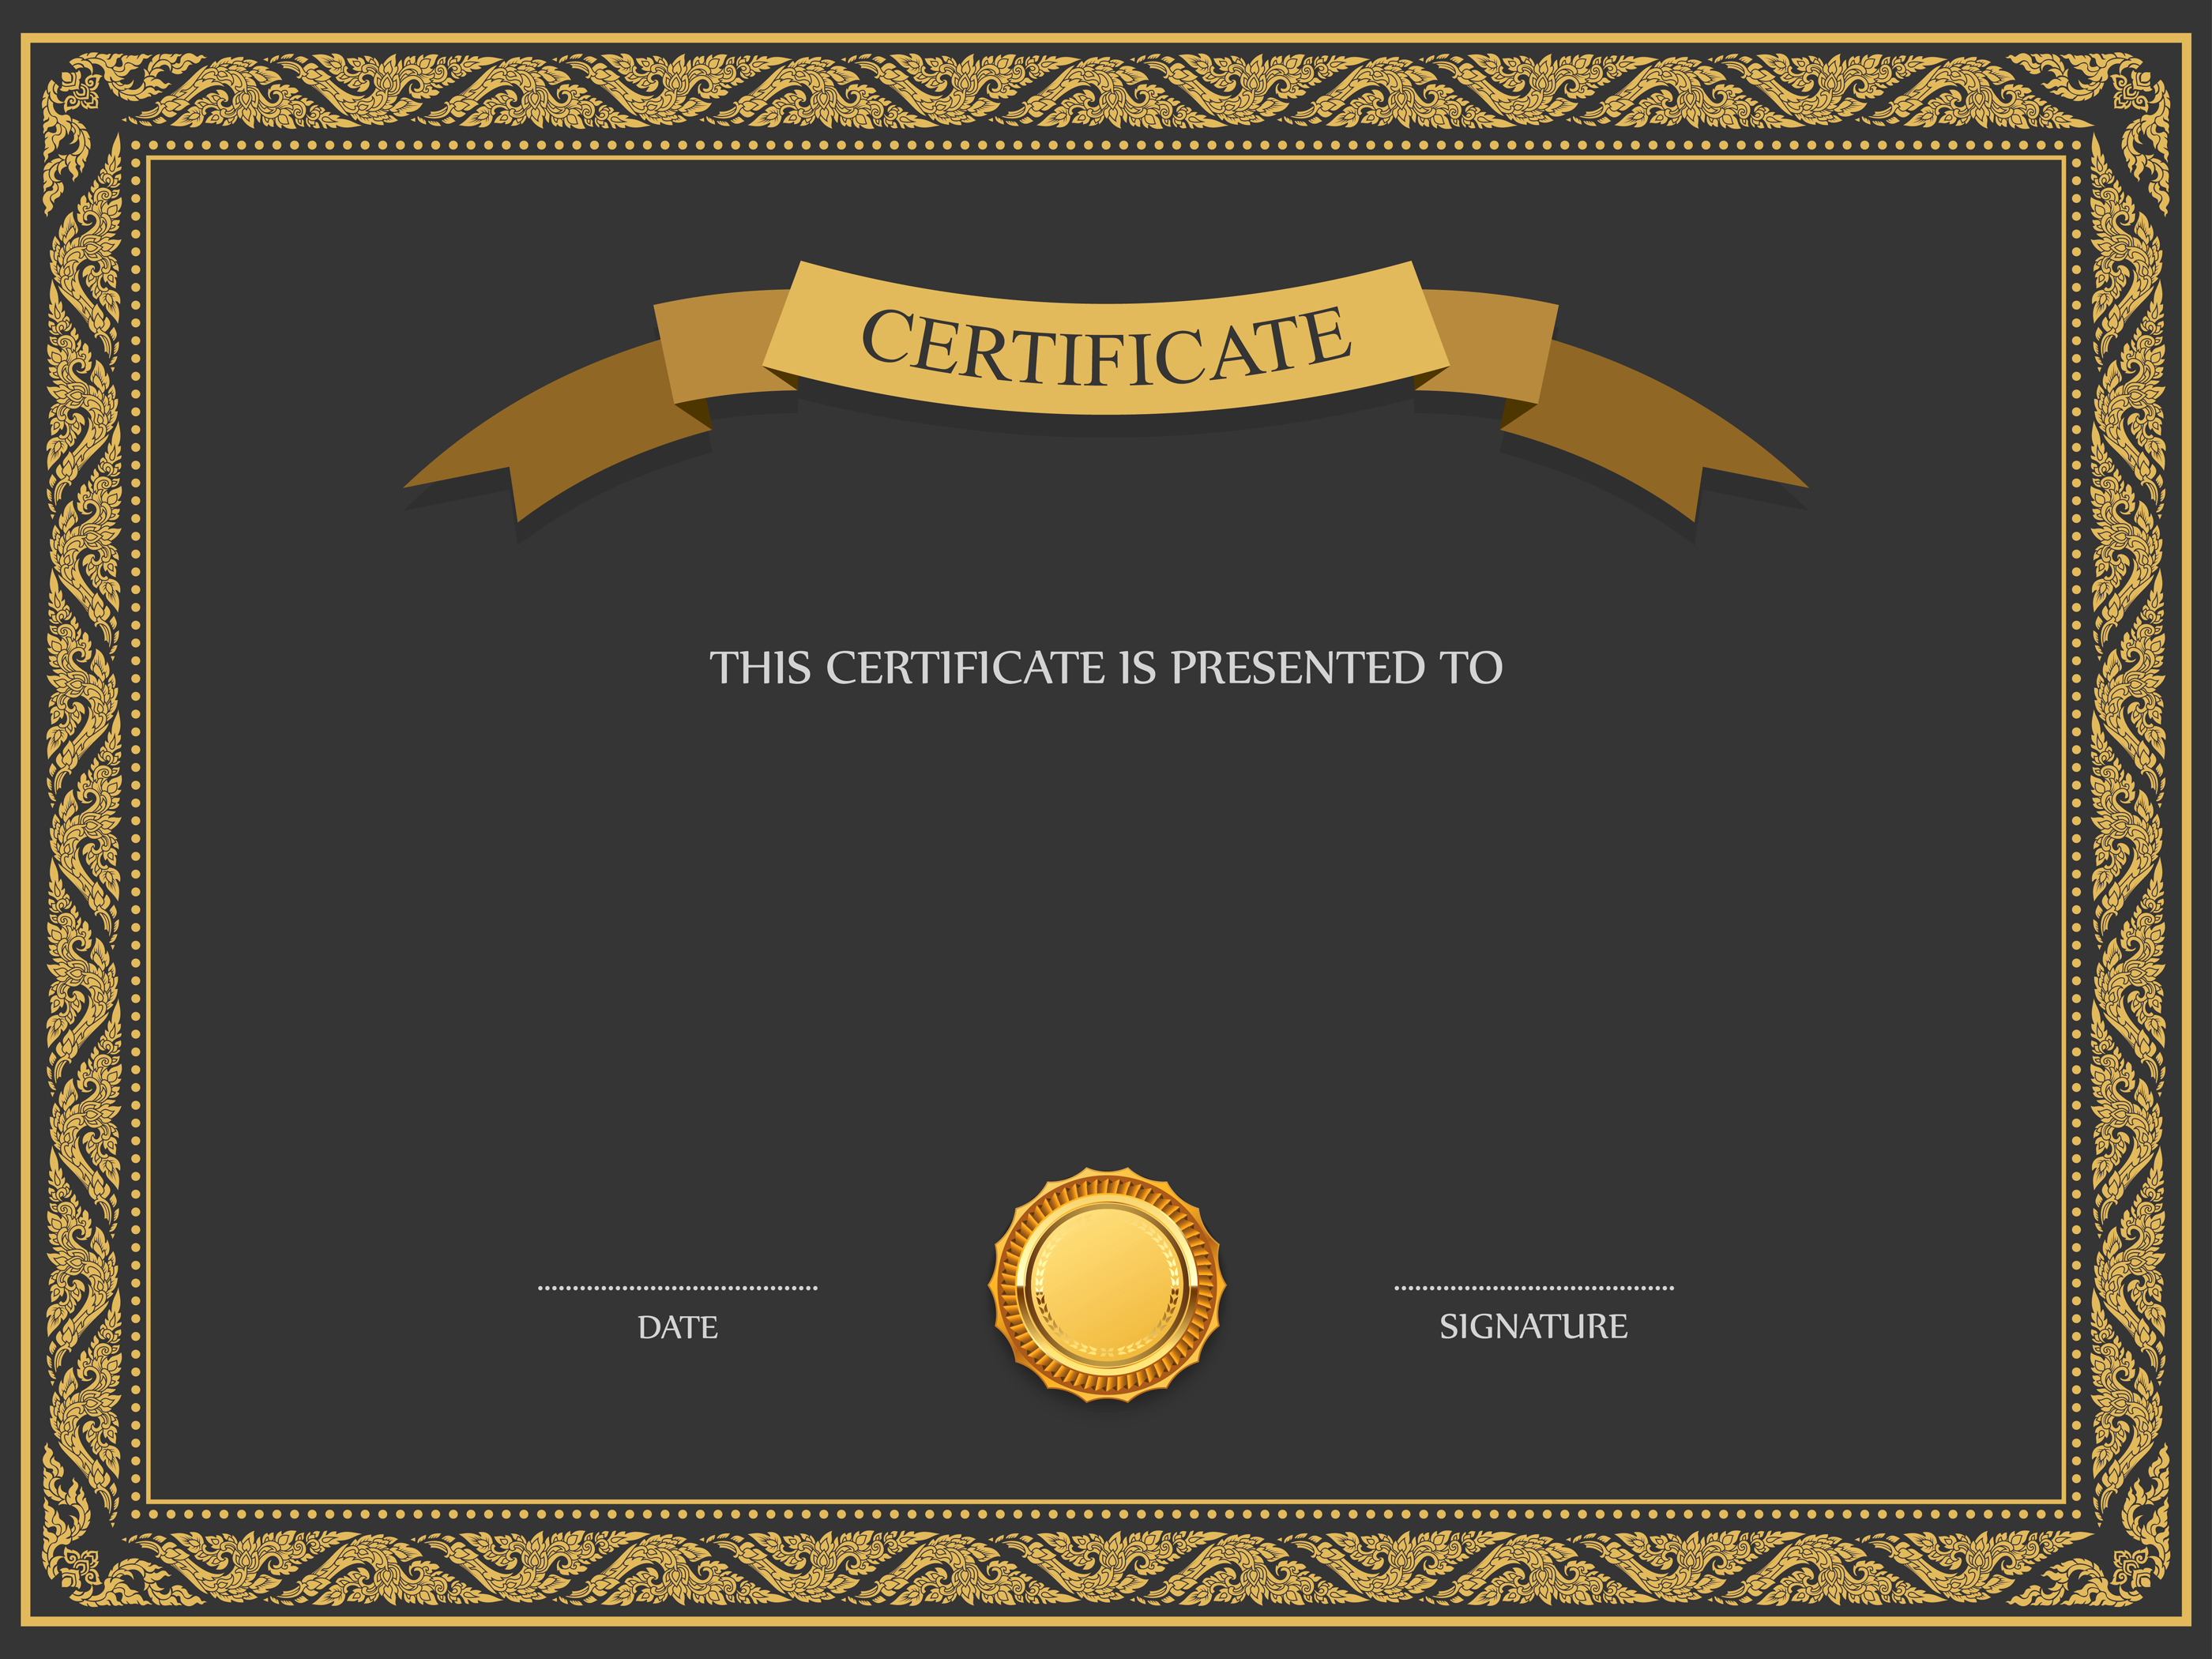 Certificate Template PNG Image.